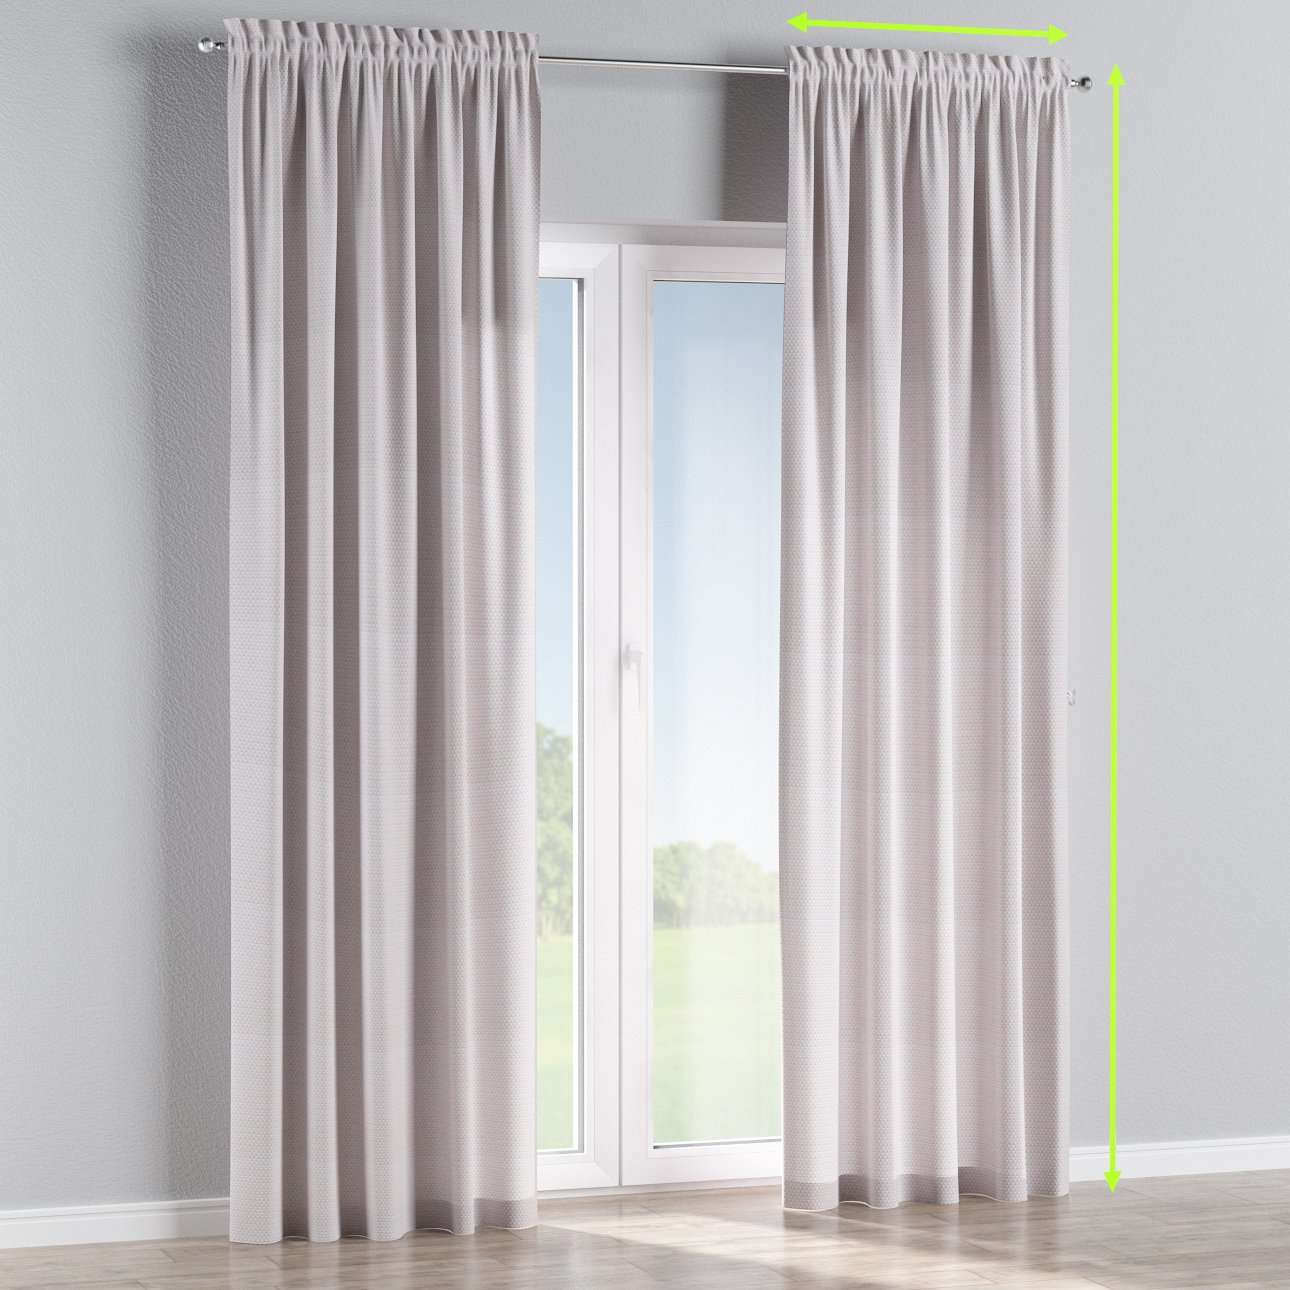 Slot and frill lined curtains in collection Rustica, fabric: 140-28